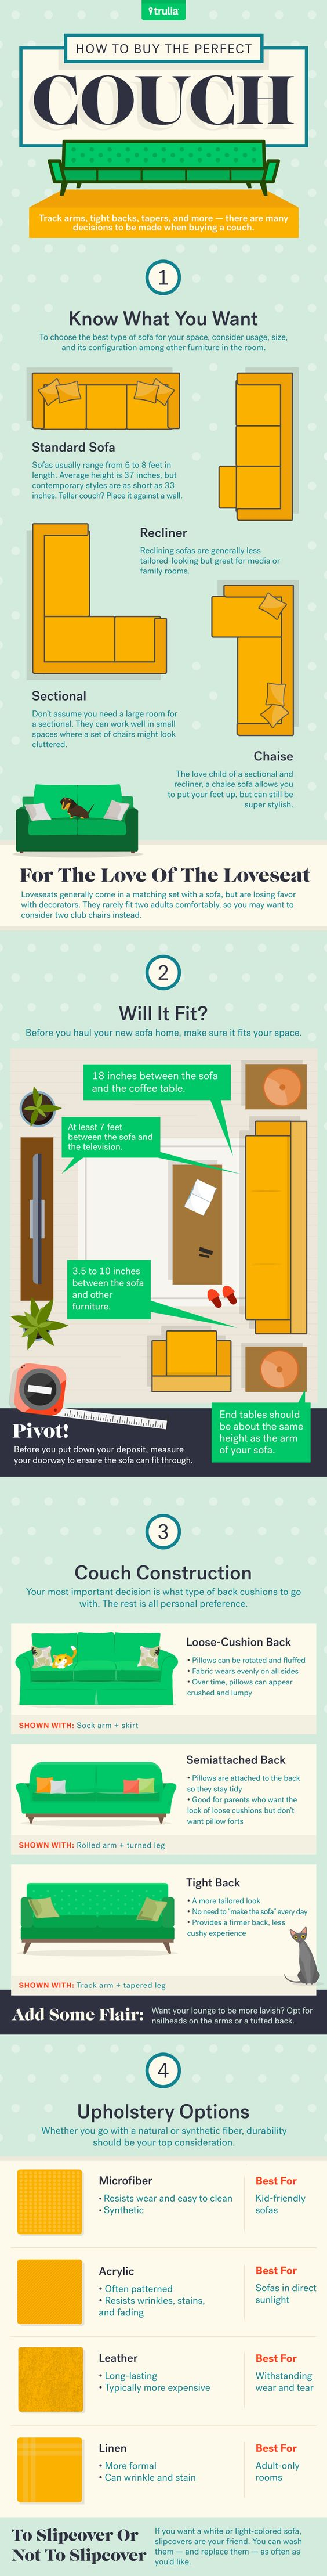 When you try to do everything yourself and rush through a room design or home renovation, important things fall through the cracks. It can be really easy to make expensive and time-consuming mistakes. From choosing the wrong shade of paint to the more devastatingly expensive construction mistakes, here are just 5 of the common design disasters we get called in to fix and the best ways you can avoid them.